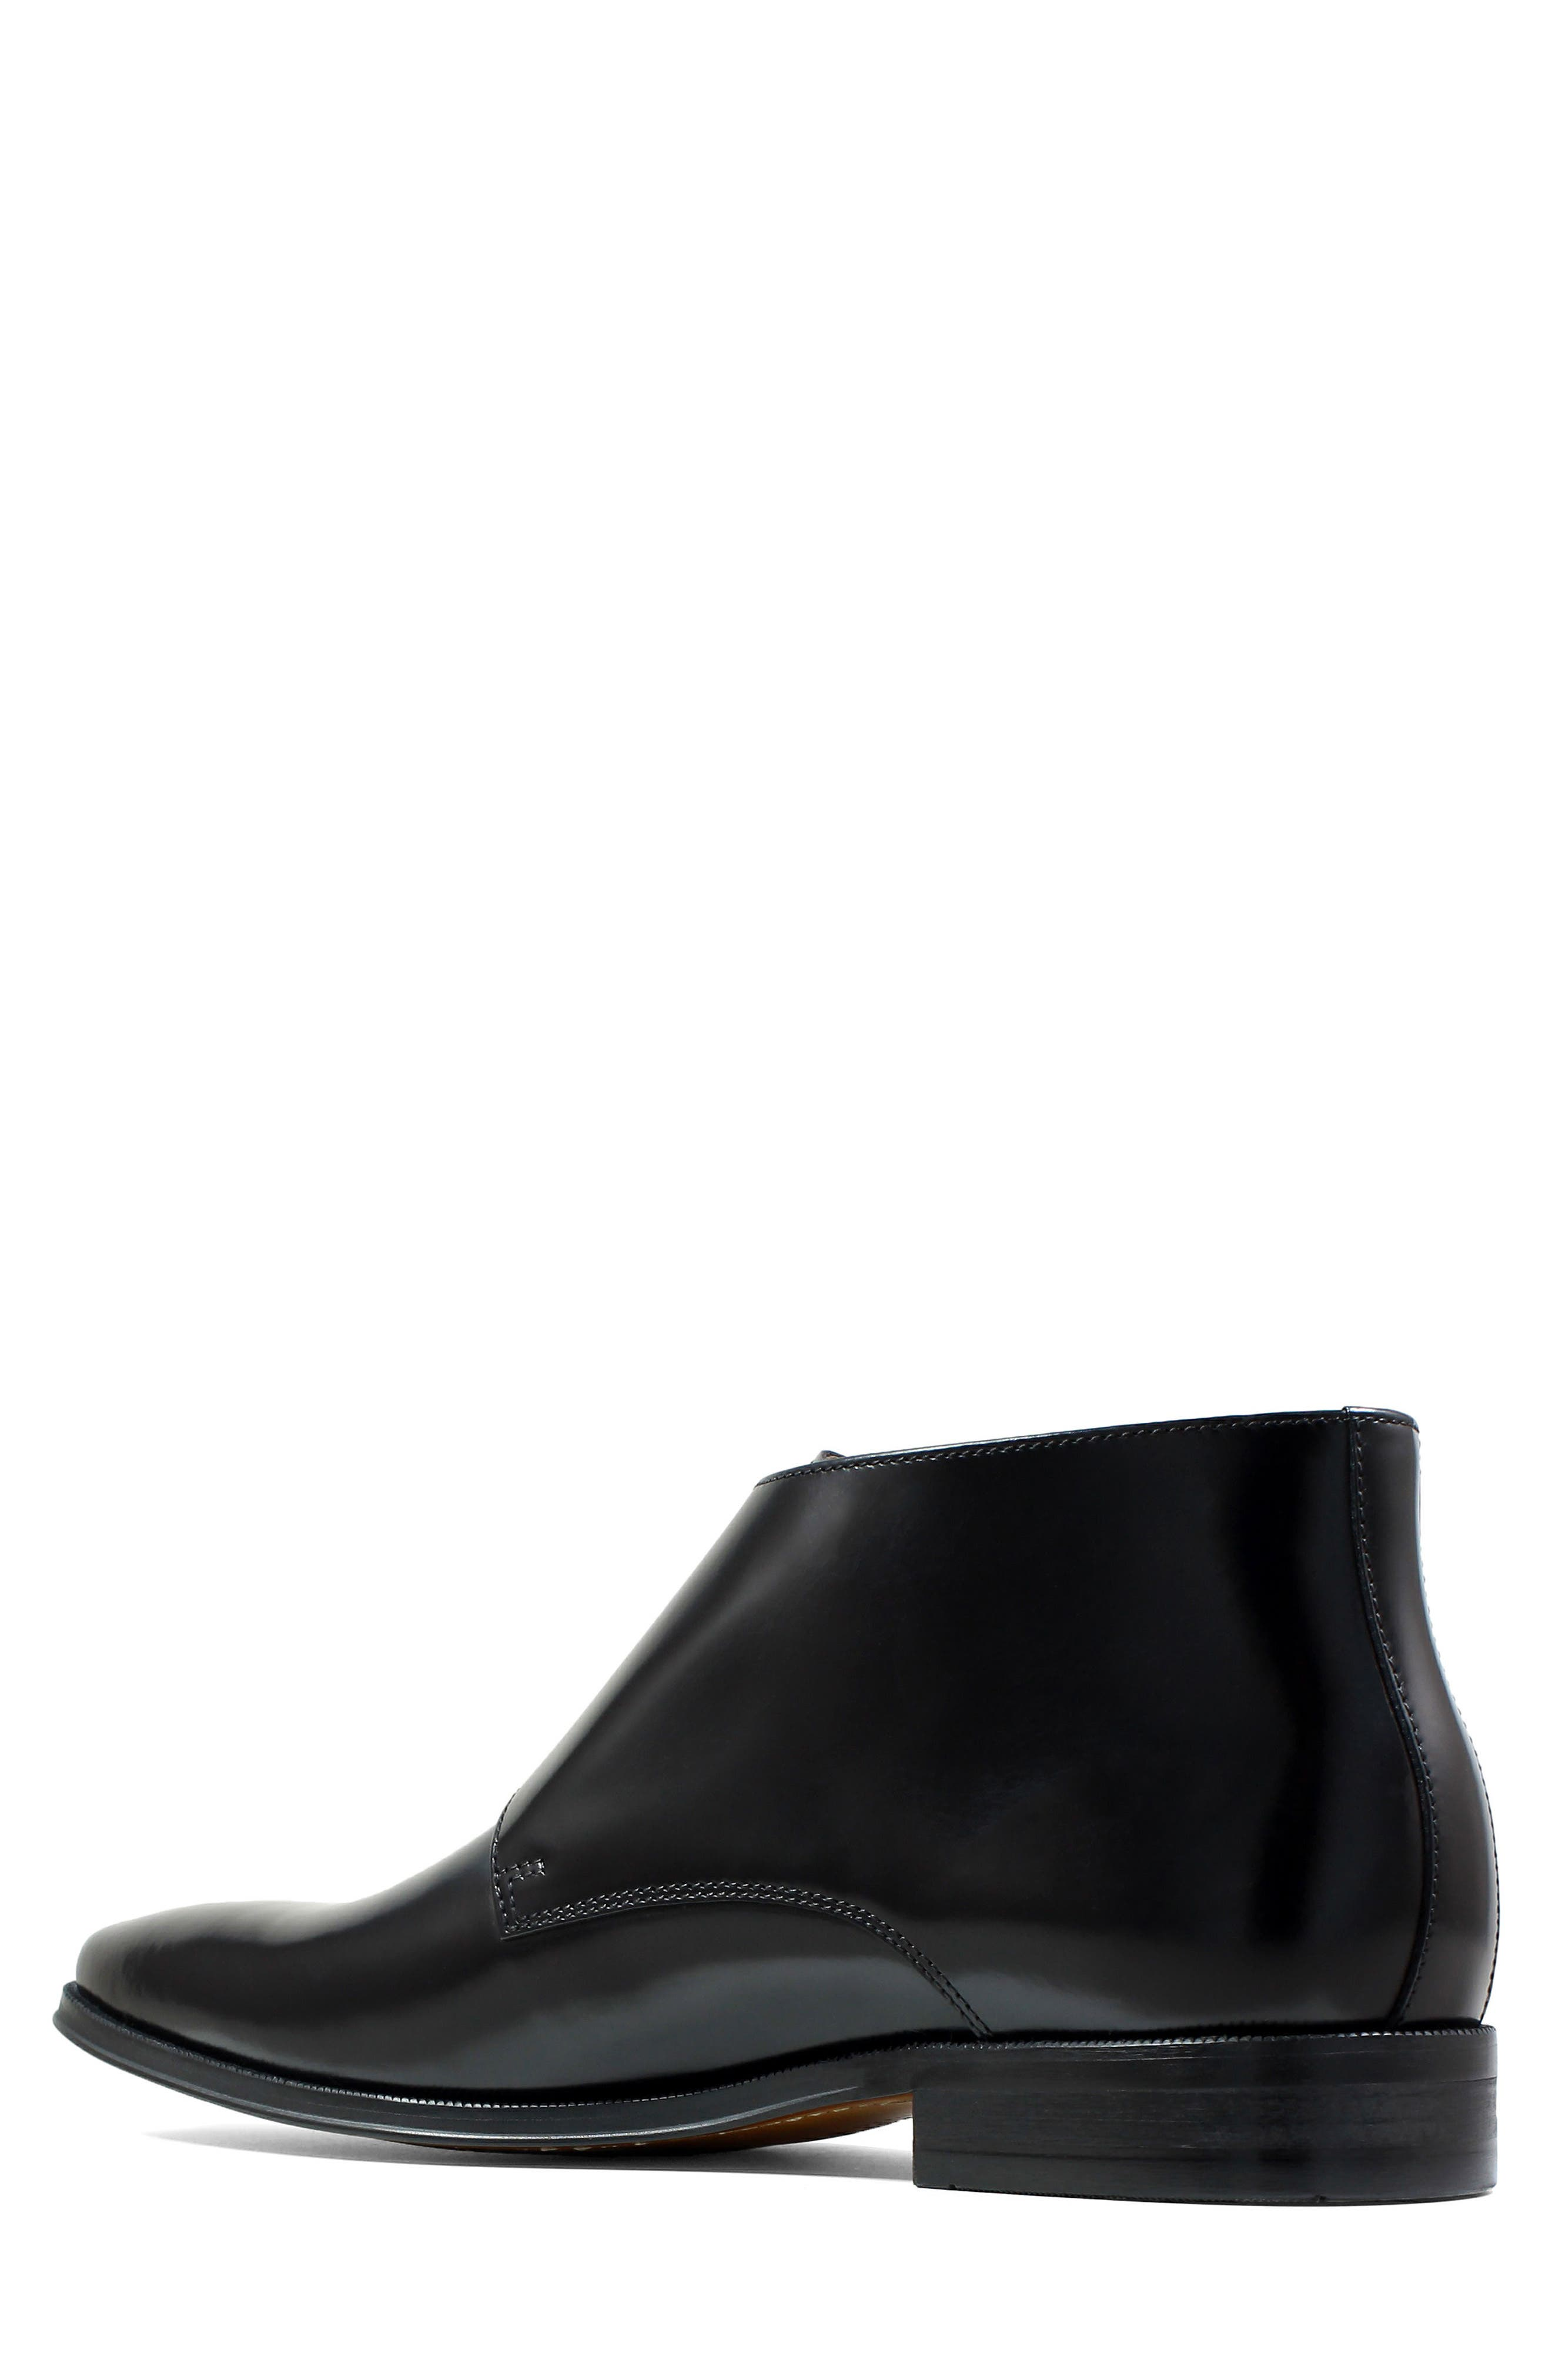 Belfast Double Monk Strap Boot,                             Alternate thumbnail 3, color,